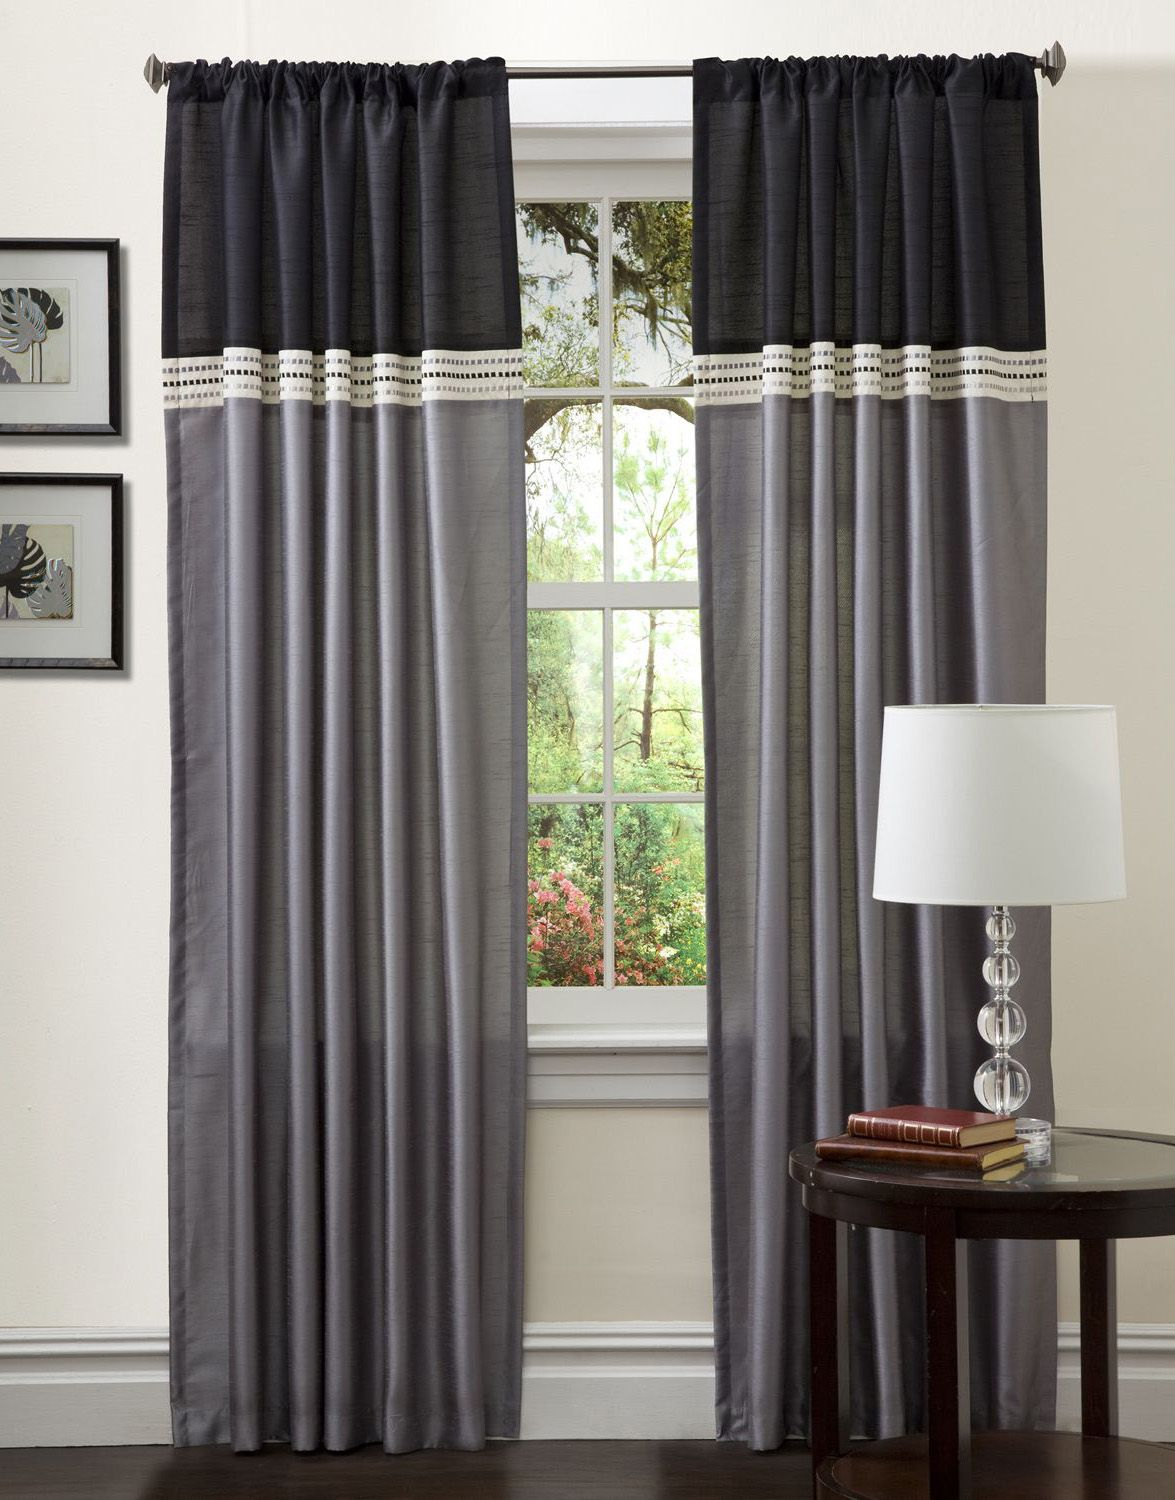 Creative ways to extend the length of your curtain panels: add color ...